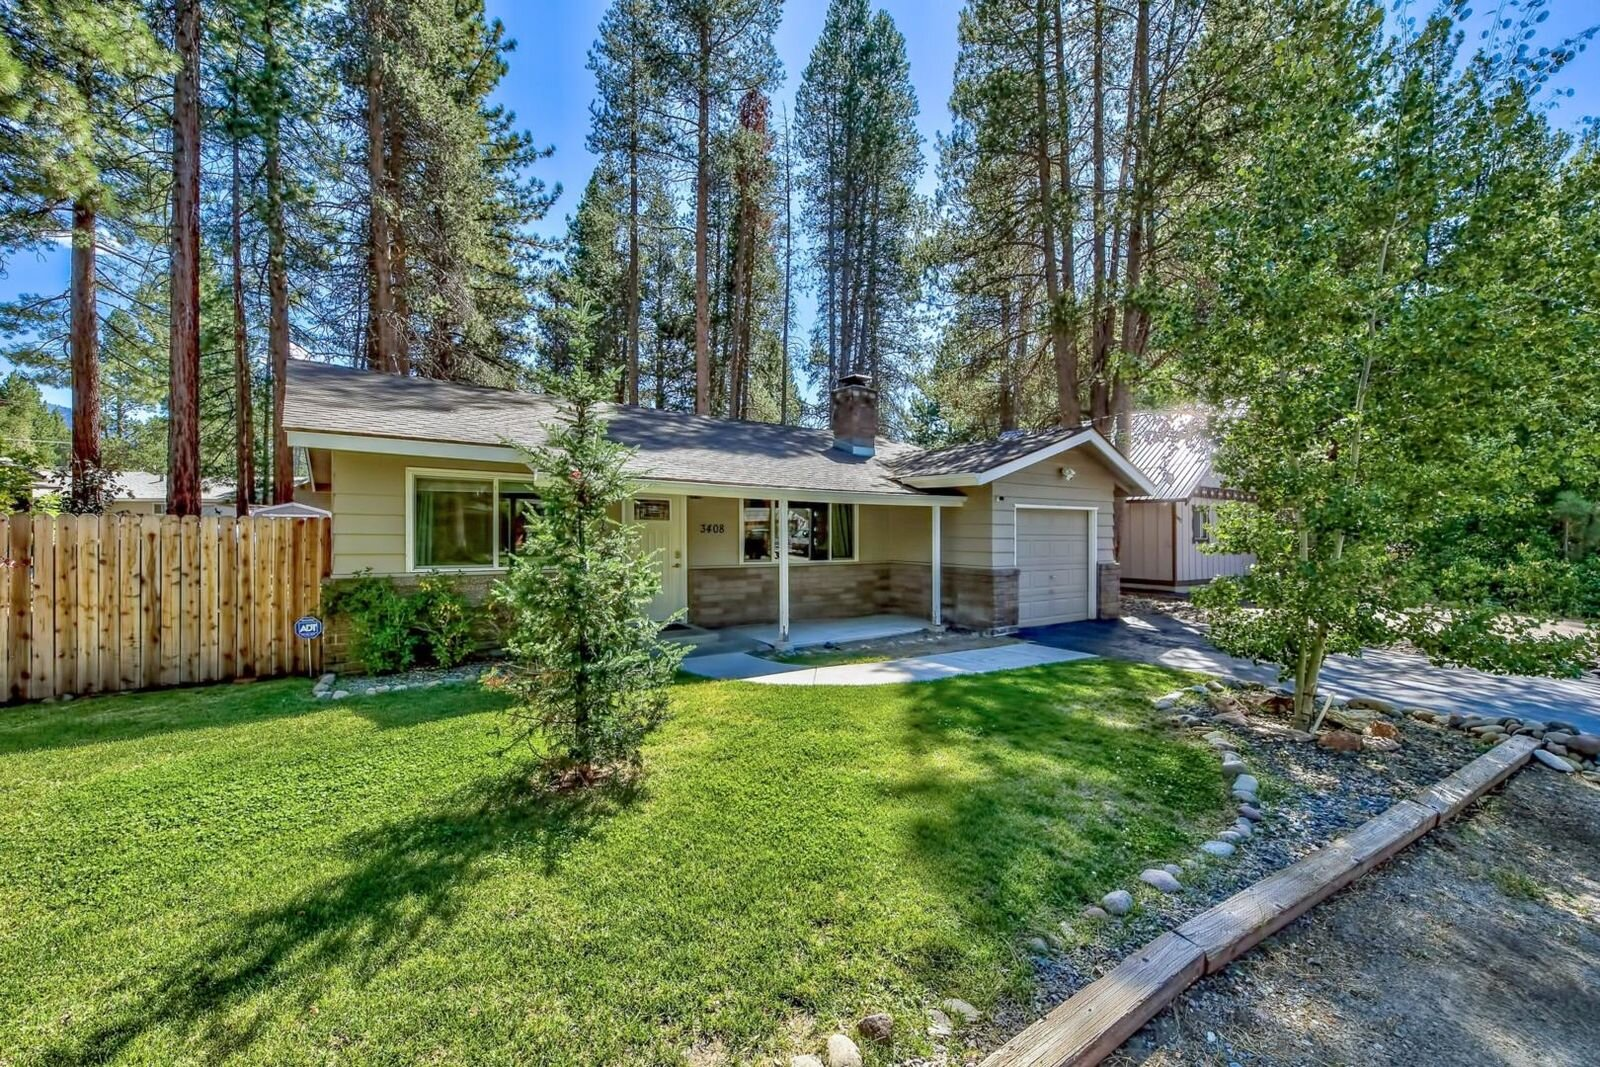 3408 Janet Drive, South Lake Tahoe, CA  2 Bed | 2 Bath | 1,056 sqft | $389,000 Lorie Chapman | 530.957.2126